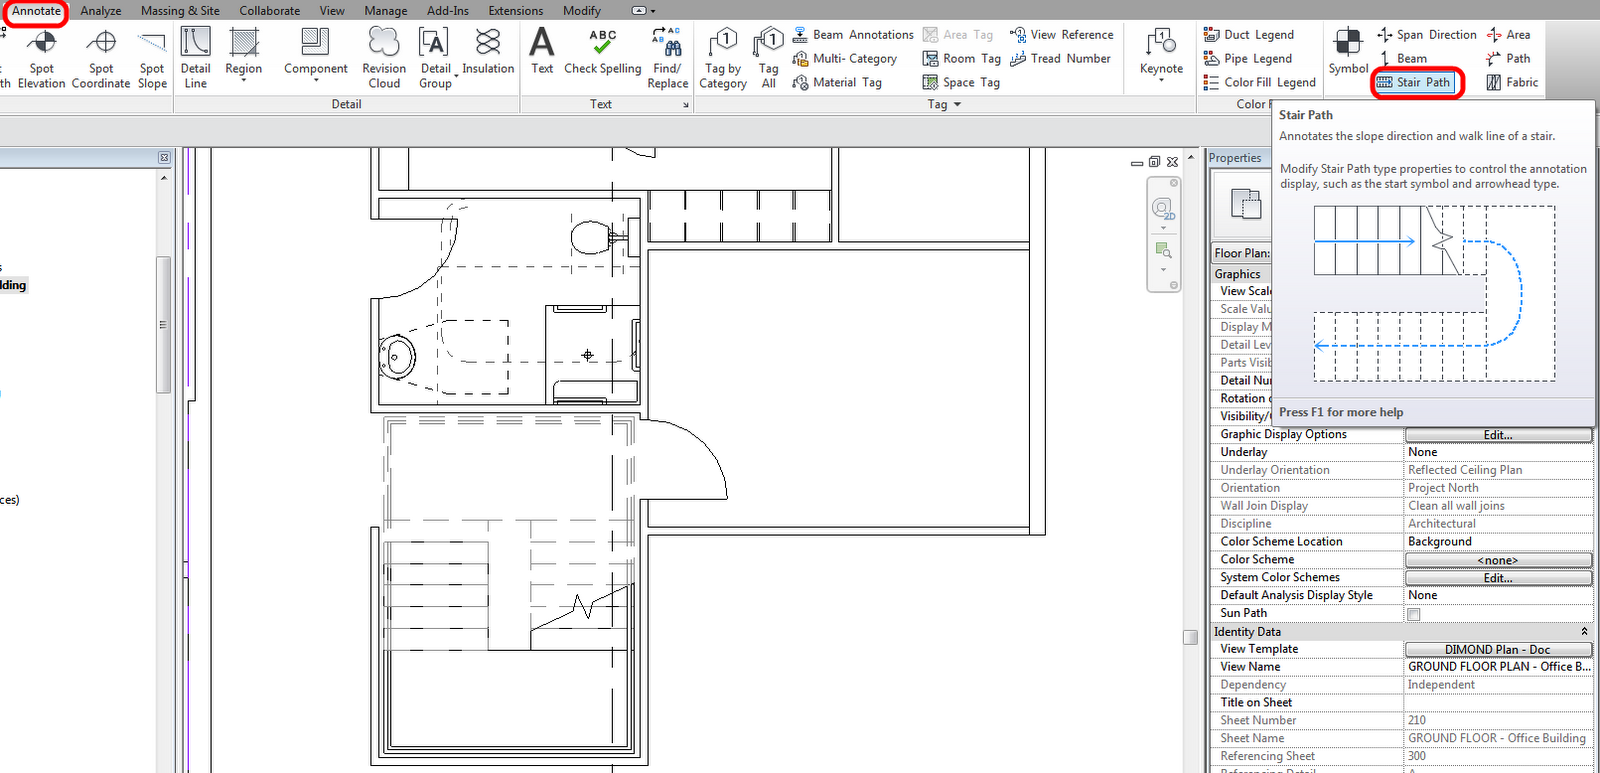 Stair Path Annotations In Revit